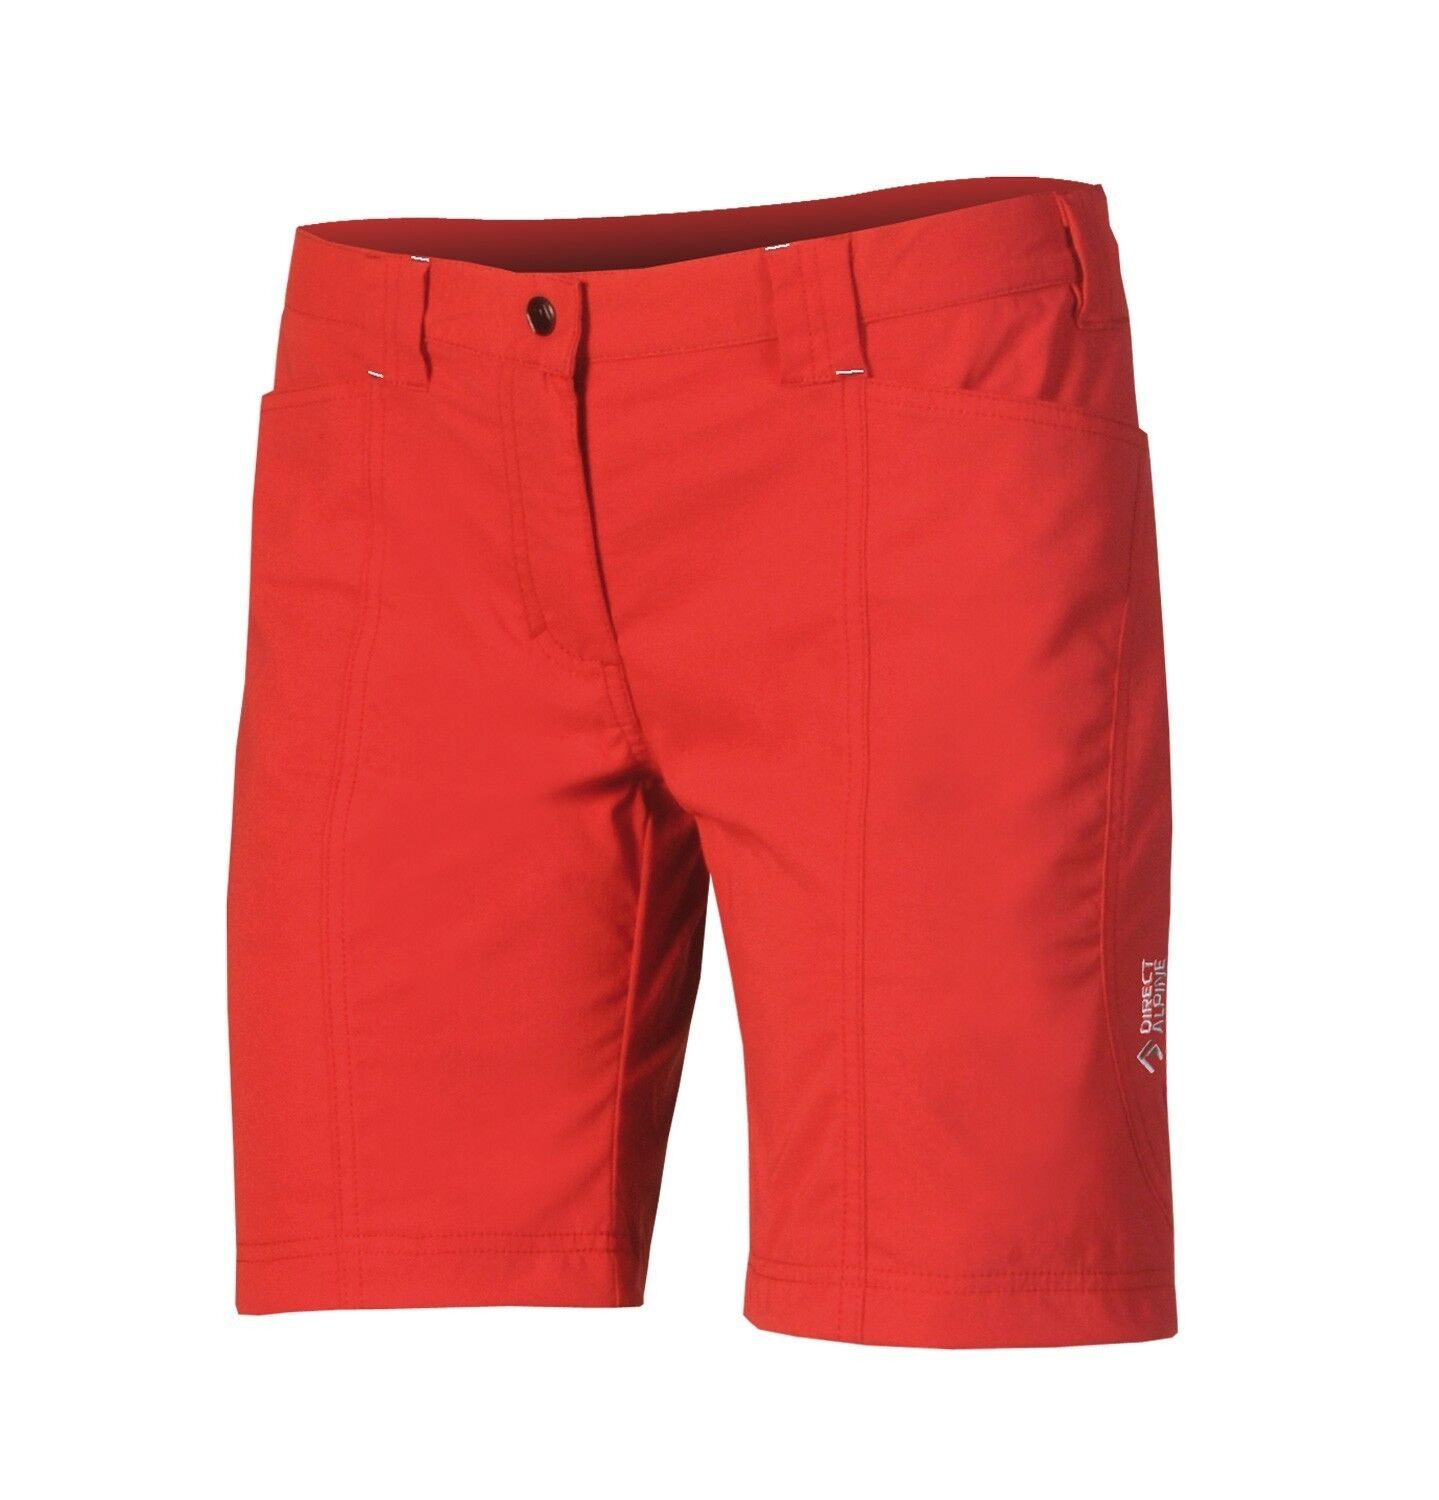 Direct Alpine Cortina Shorts Women, Elastic Outdoor  Shorts for Ladies, Red  discount promotions